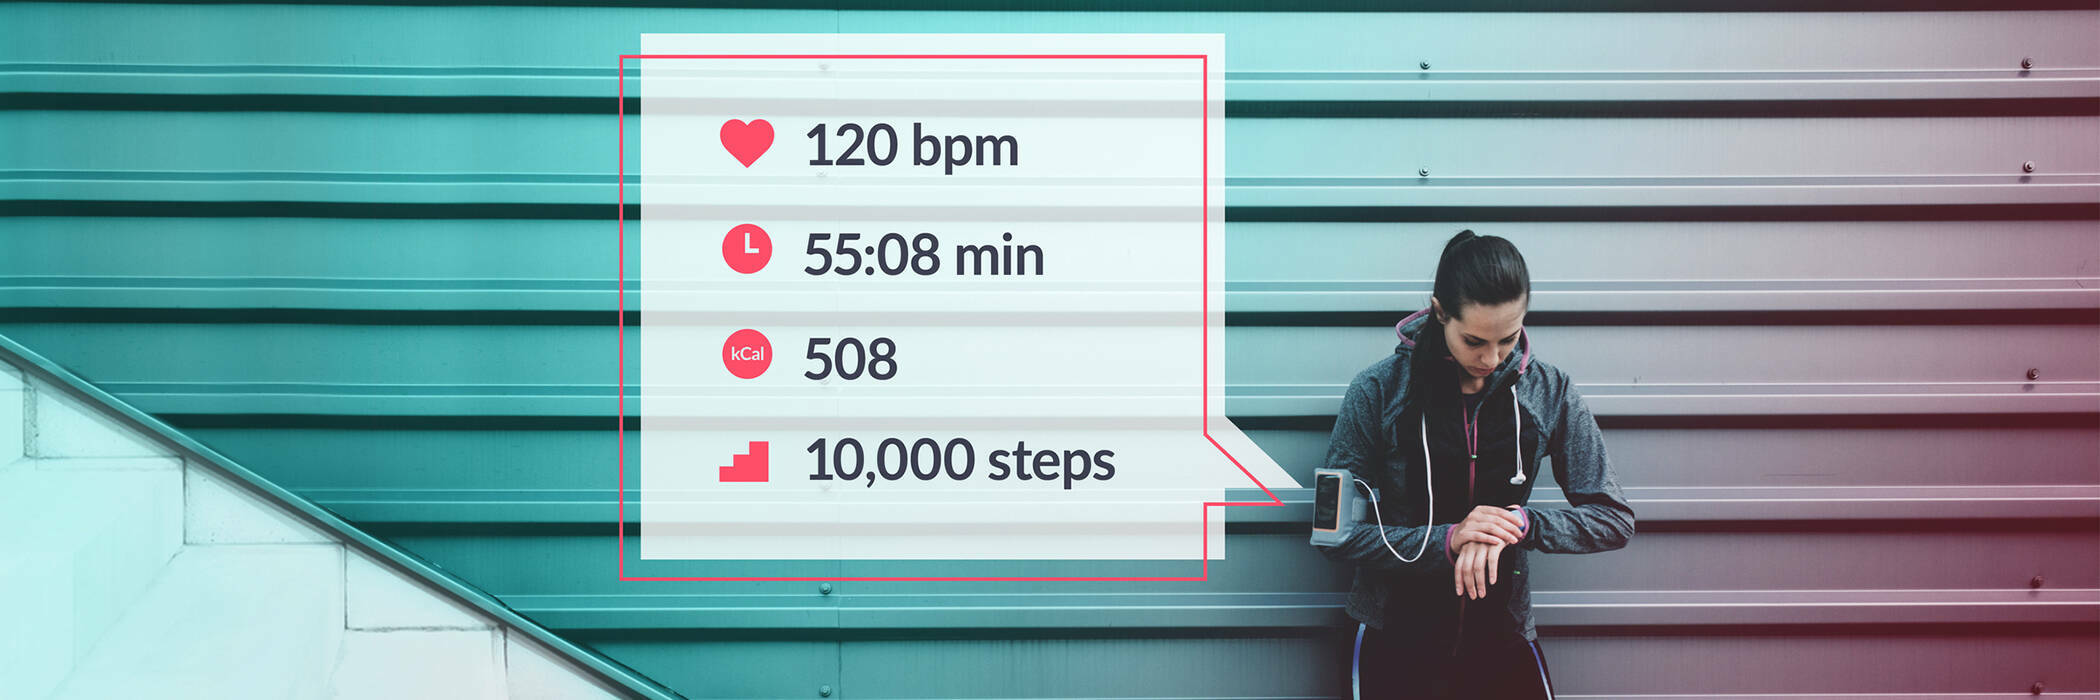 Infografic of a sporswoman who's using her smart watch.